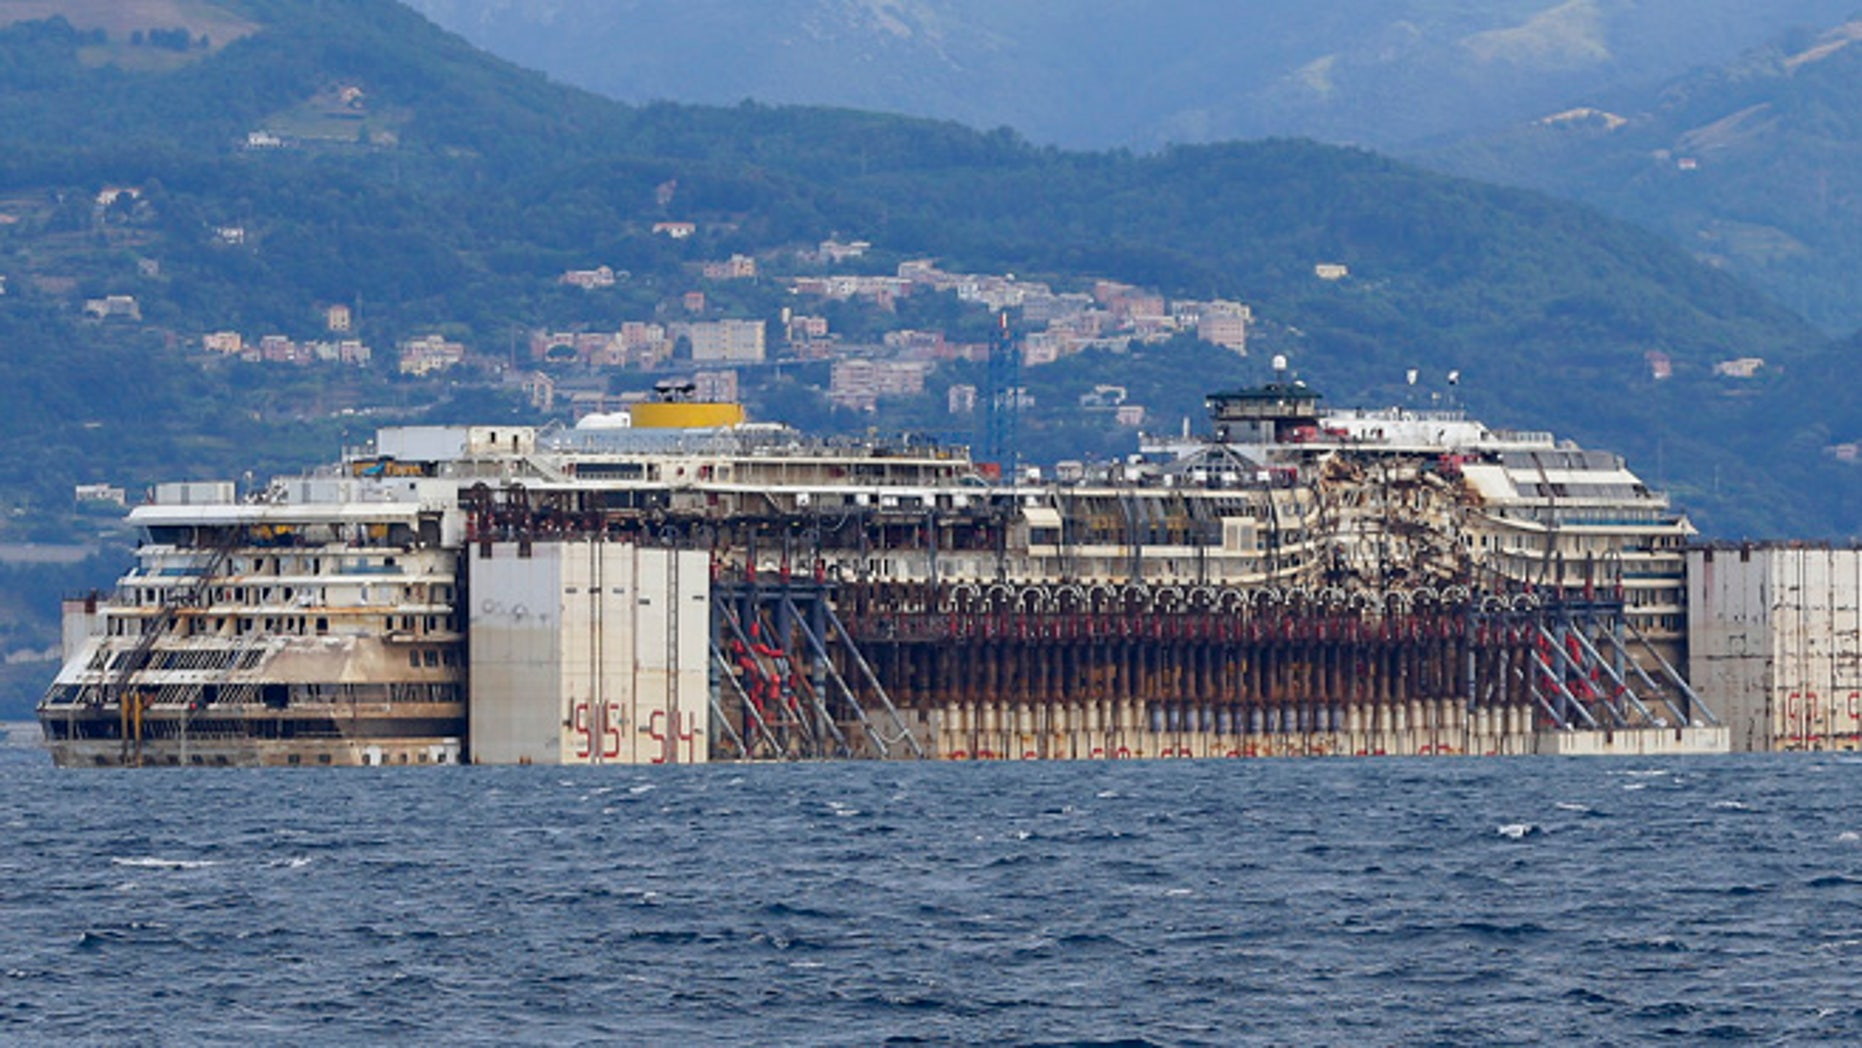 July 27, 2014: The wreck of the Costa Concordia cruise ship is towed by tugboats towards Genoa's harbor, Italy.